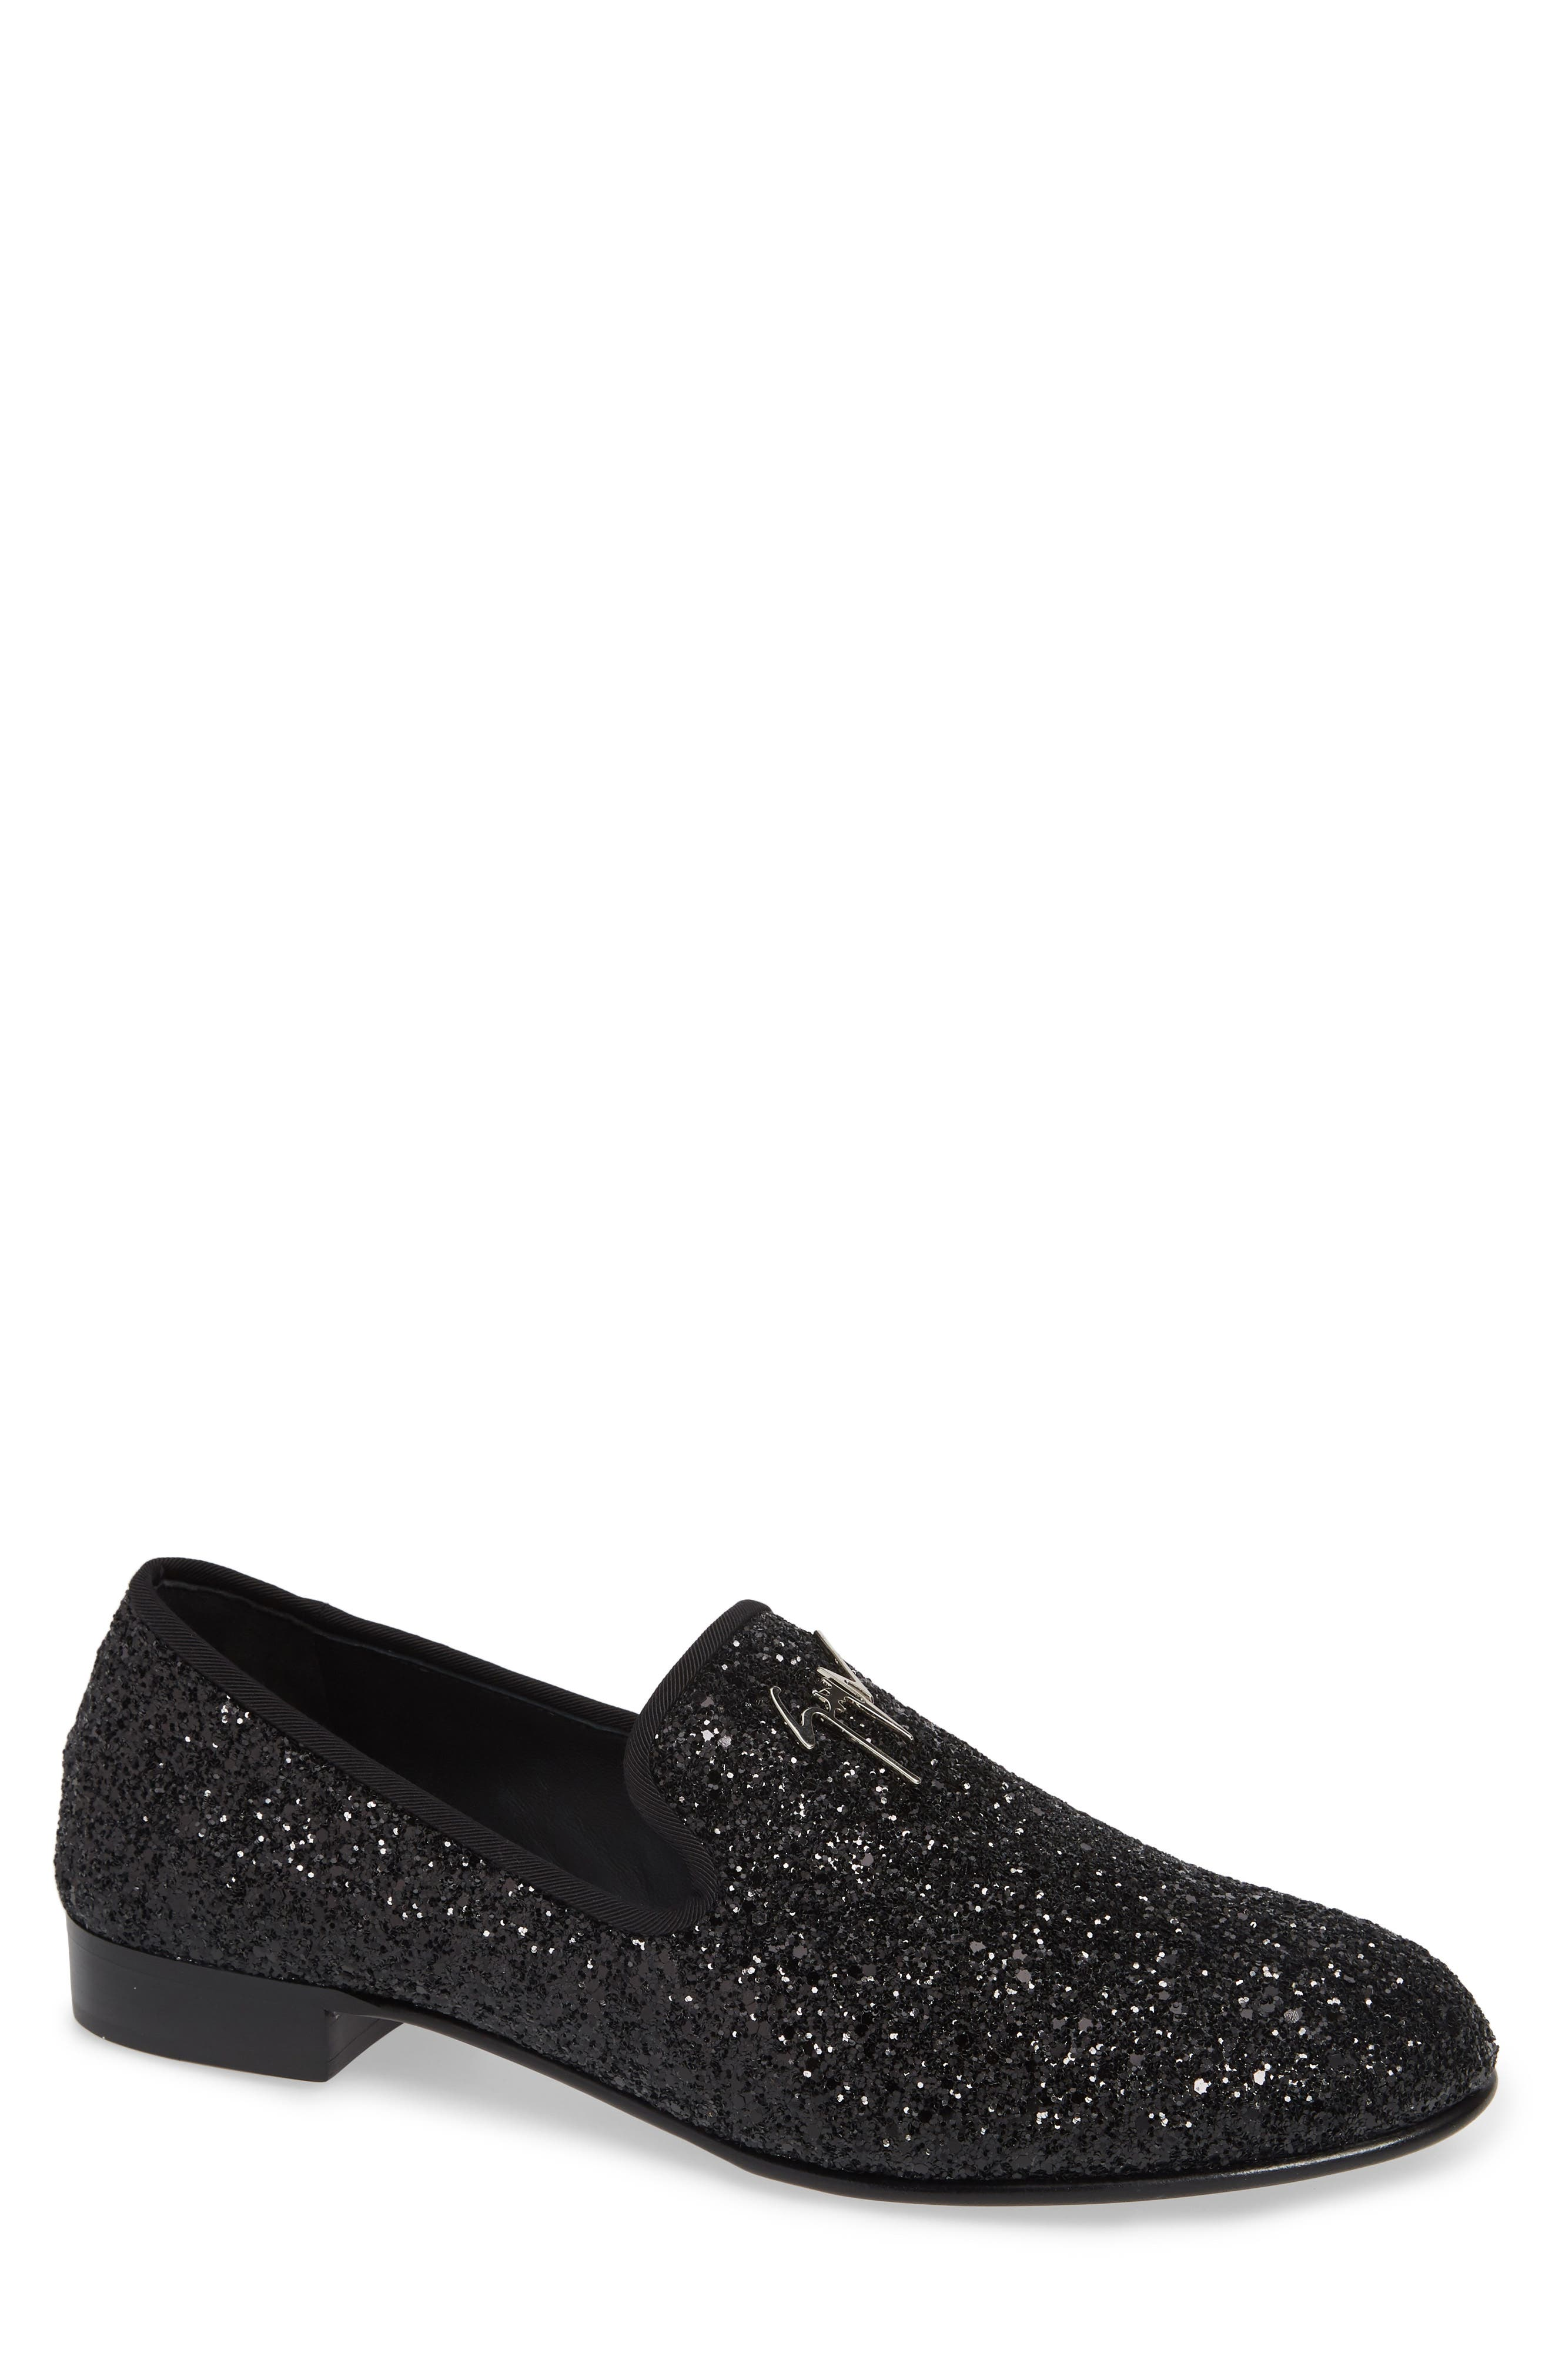 GIUSEPPE ZANOTTI Glitter Encrusted Smoking Slipper, Main, color, BLACK